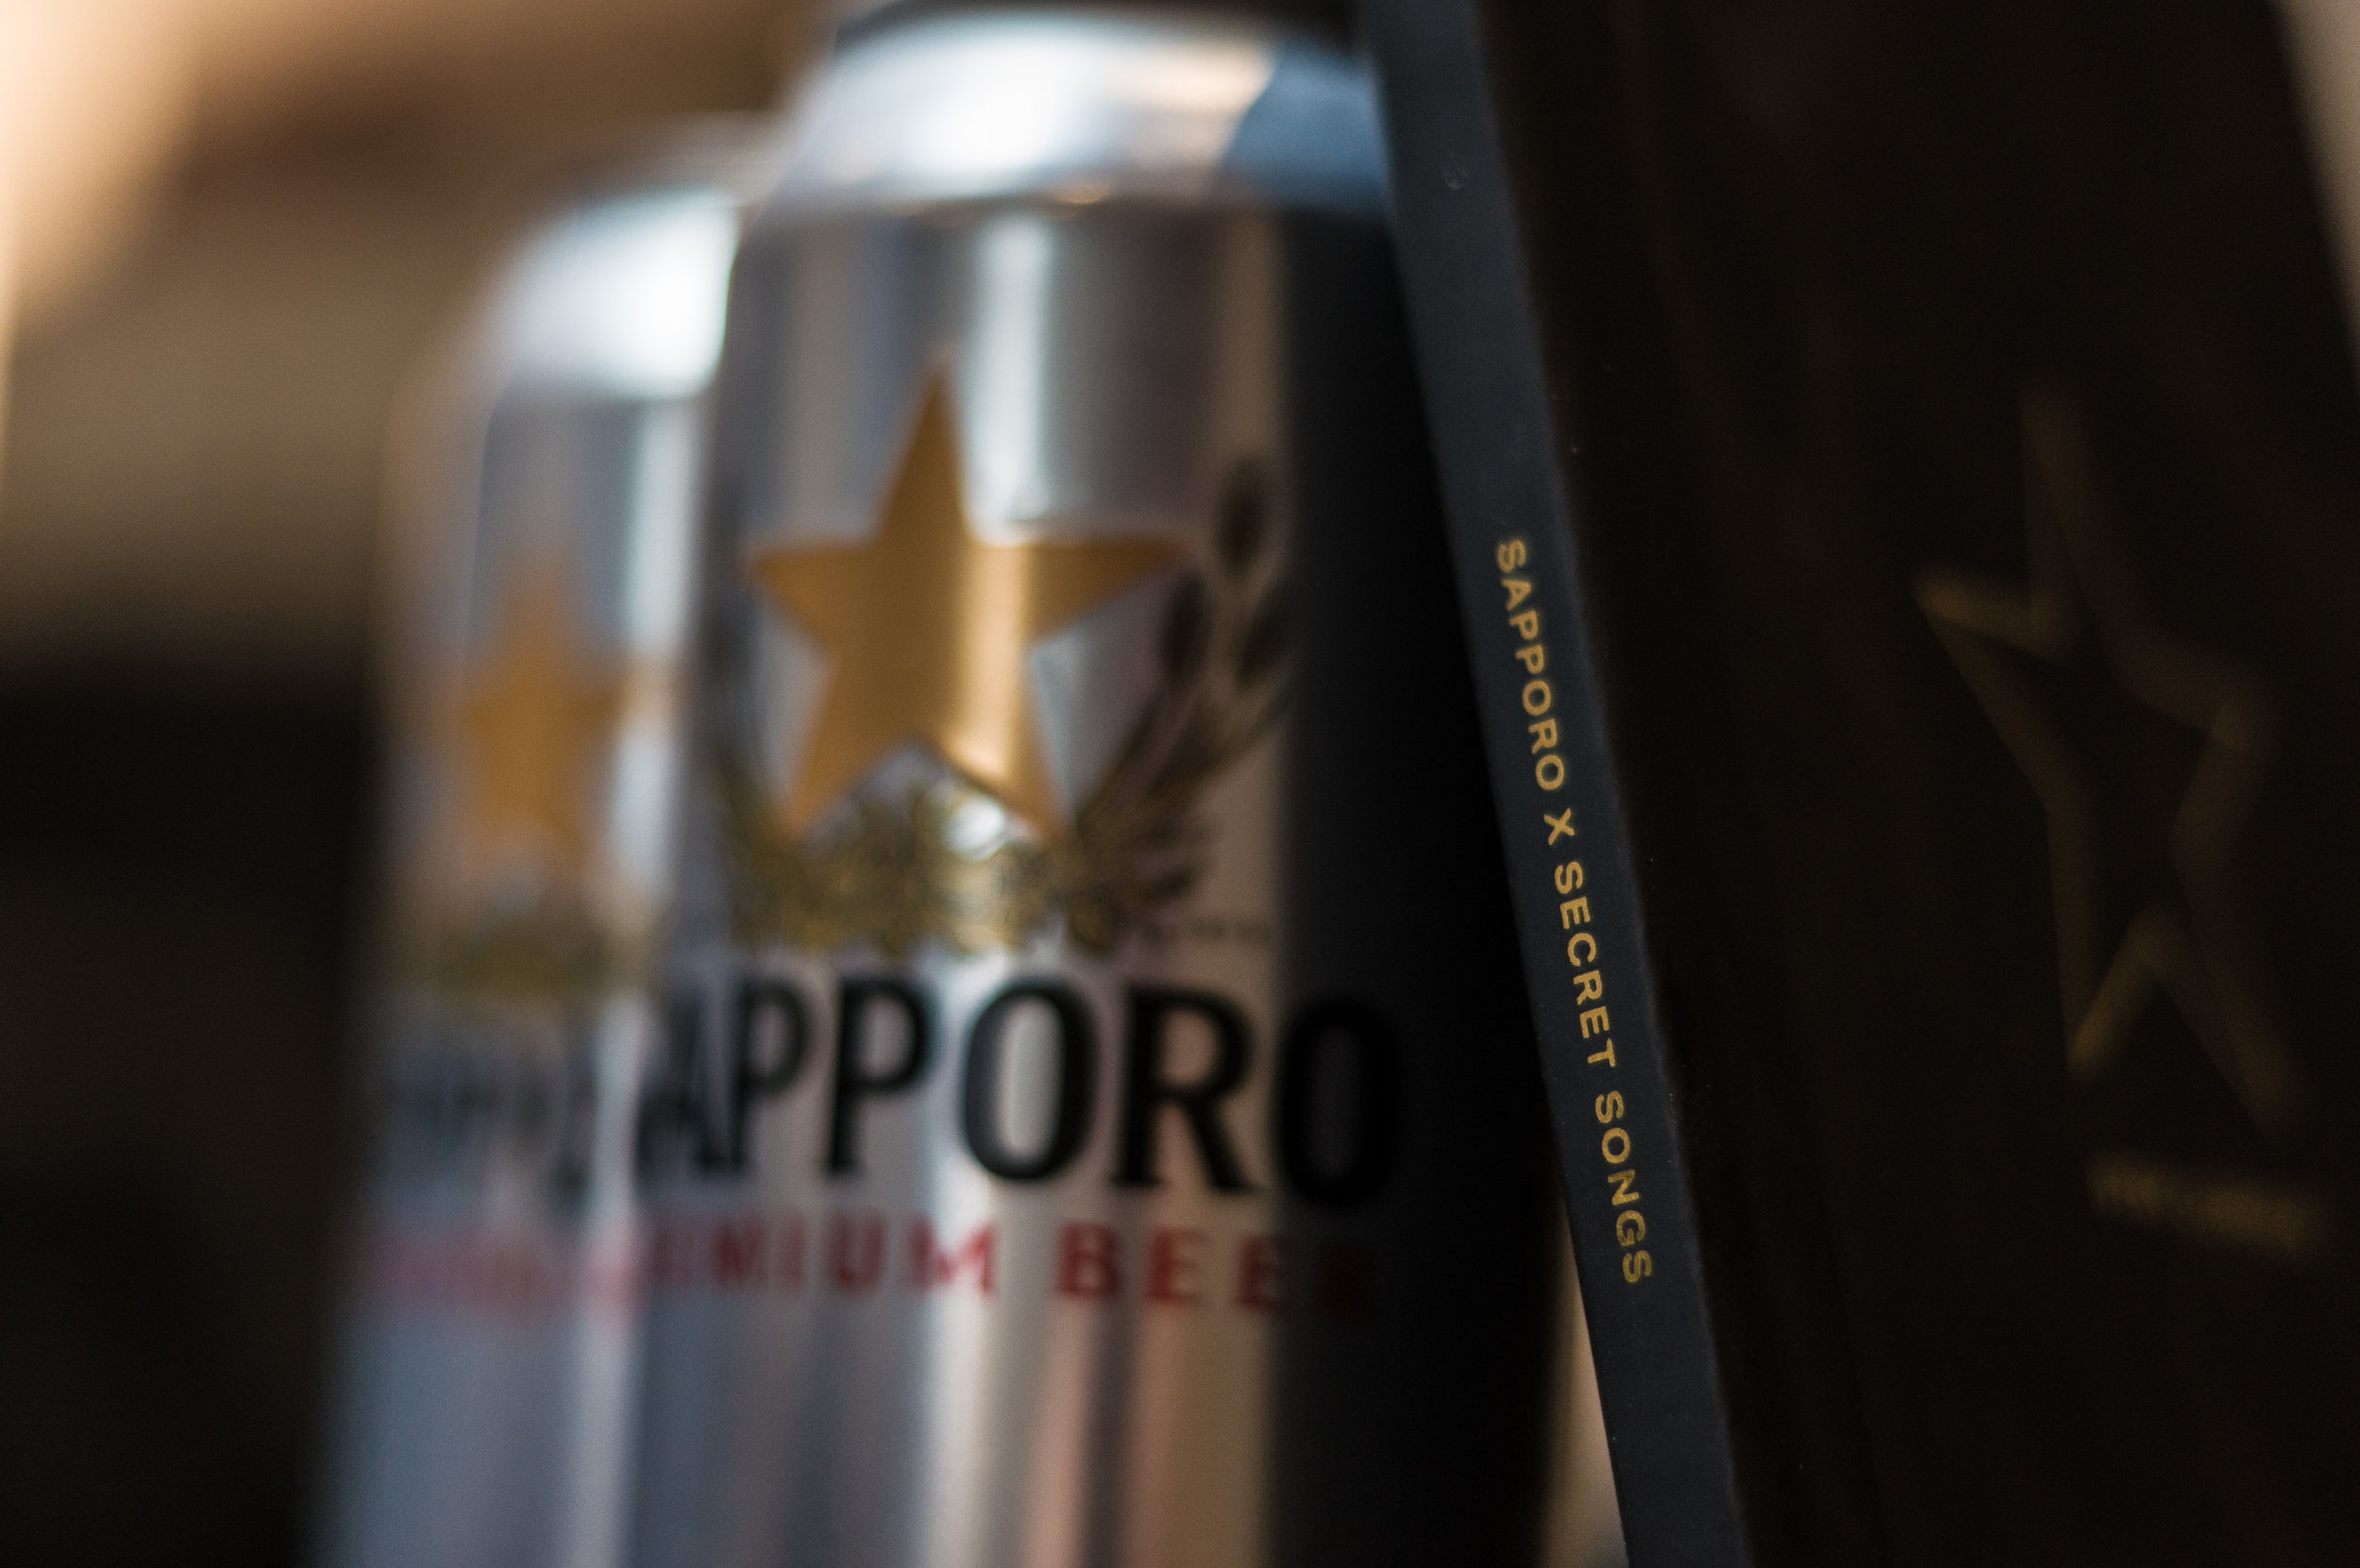 Sapporo x Secret Songs - Digital Content Collaboration with Ryan Hemsworth